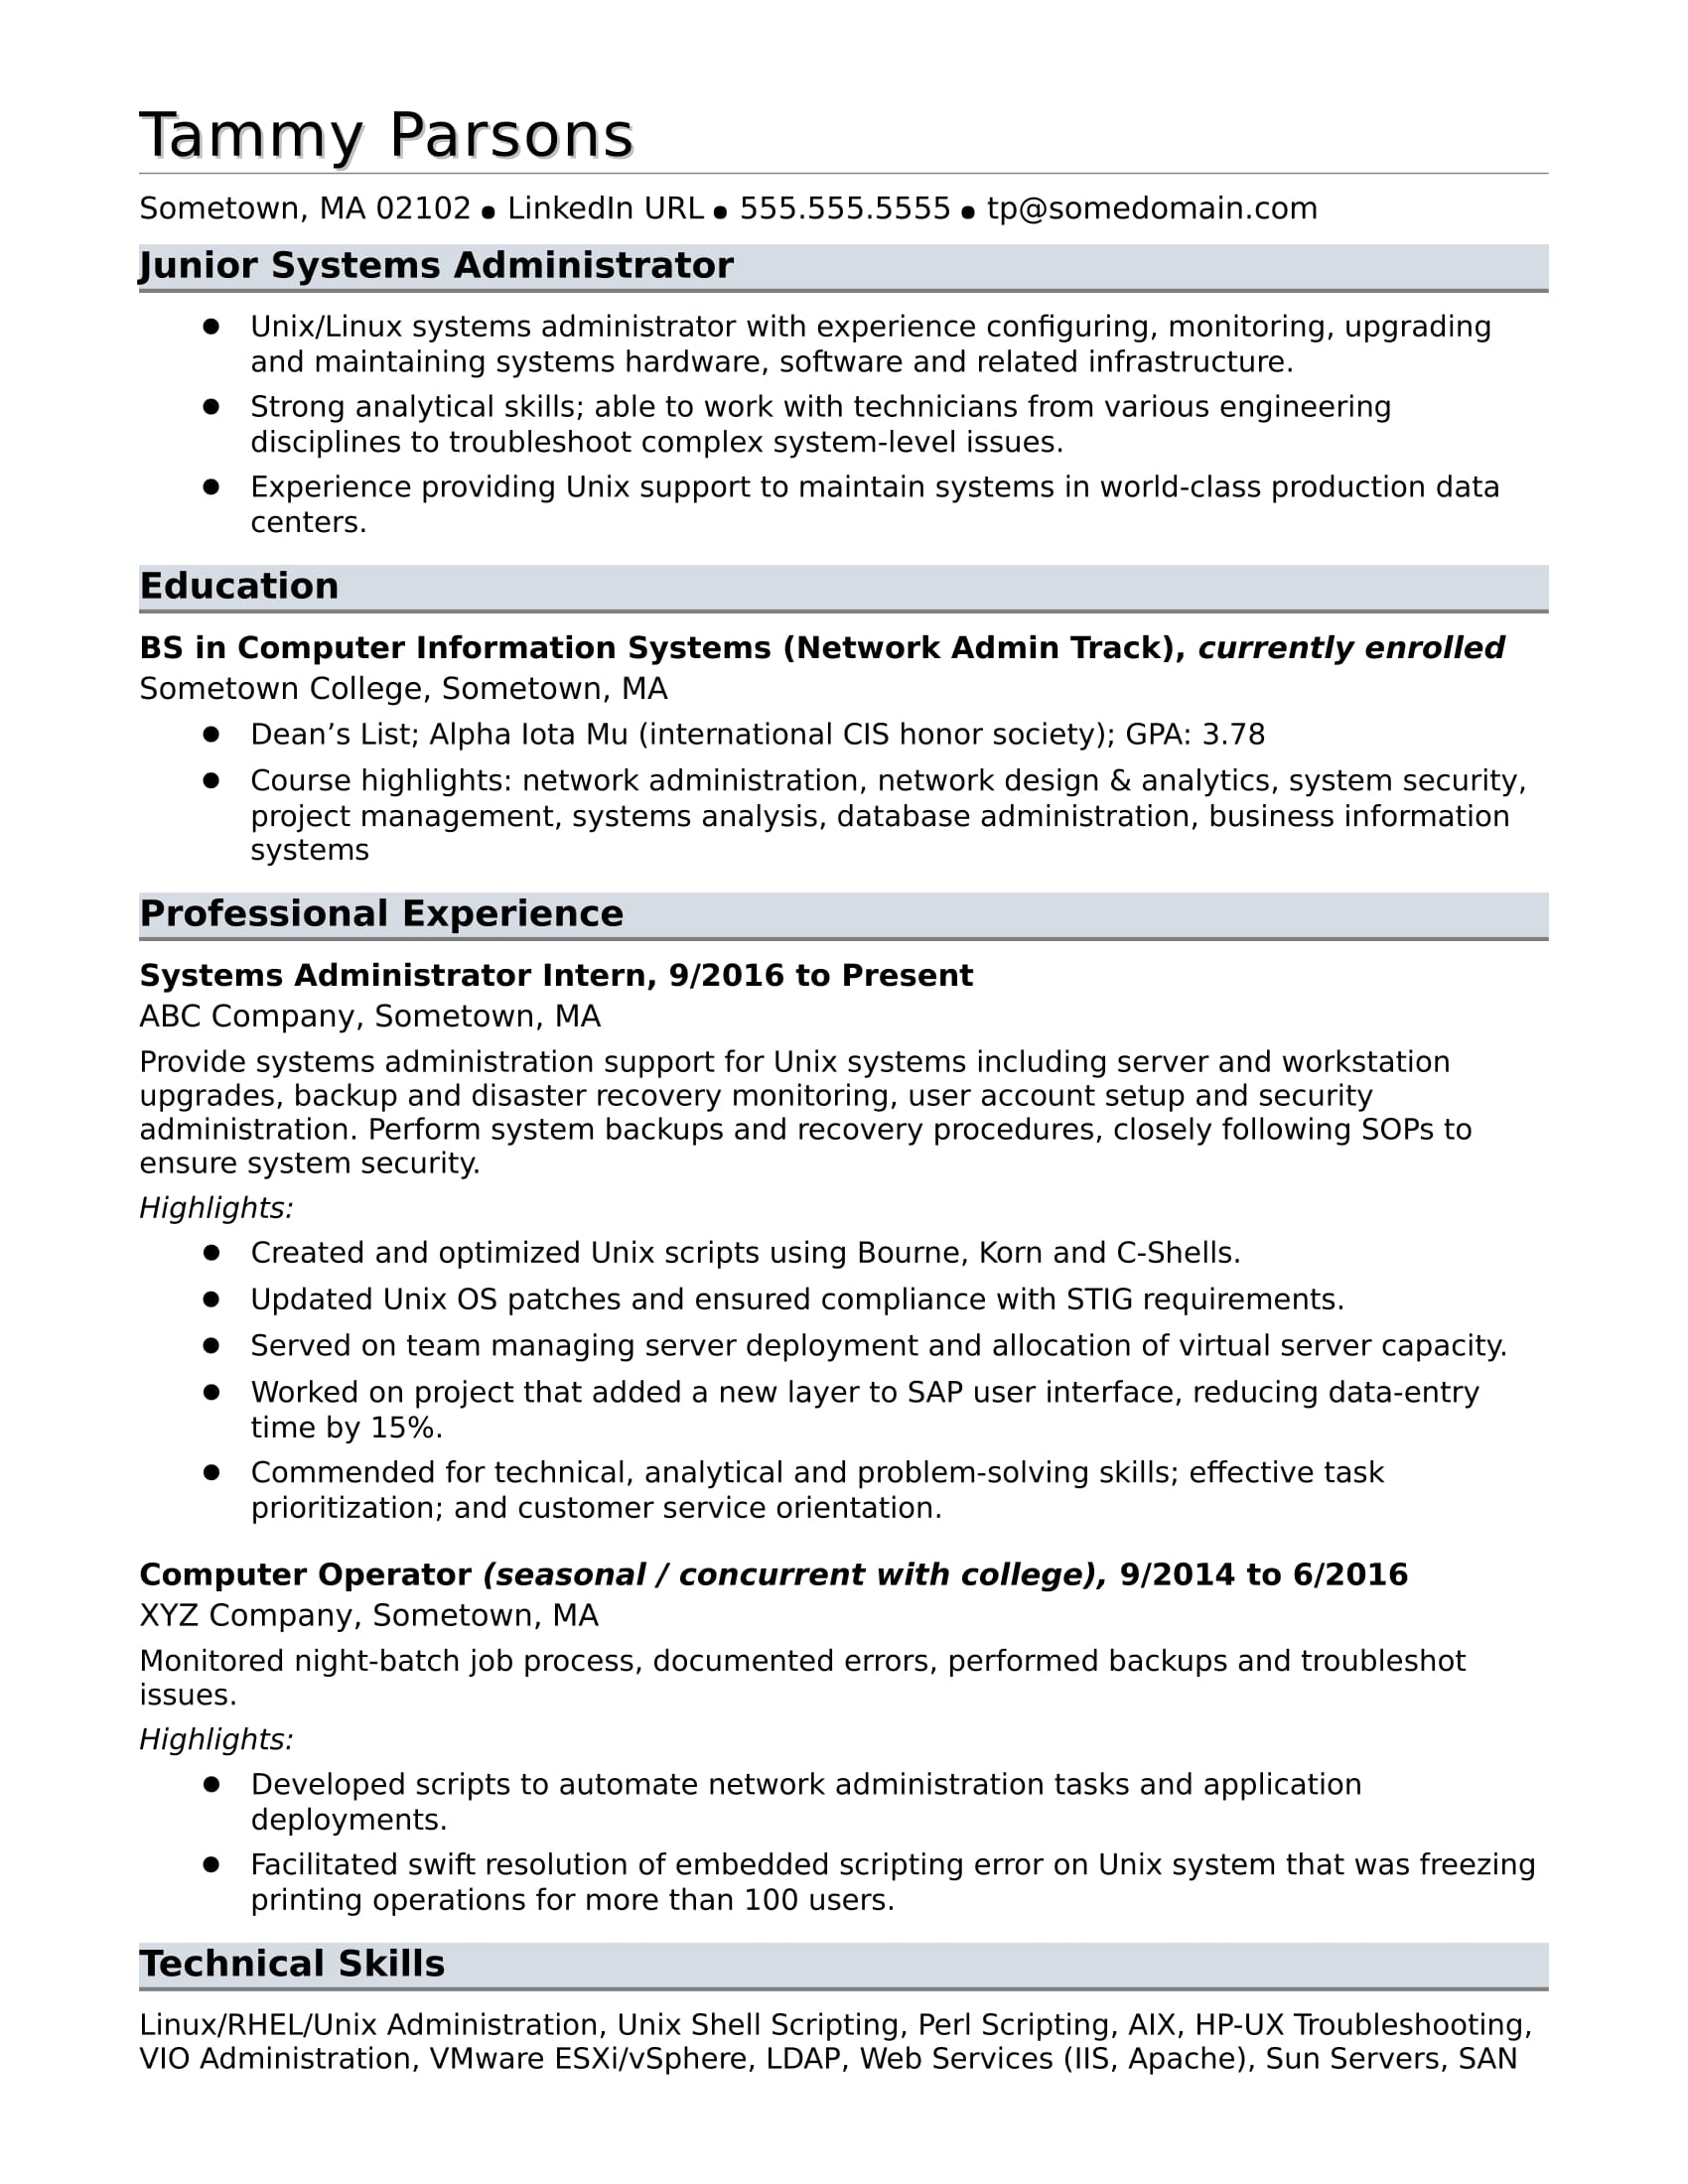 Sample Resume for an EntryLevel Systems Administrator Monstercom